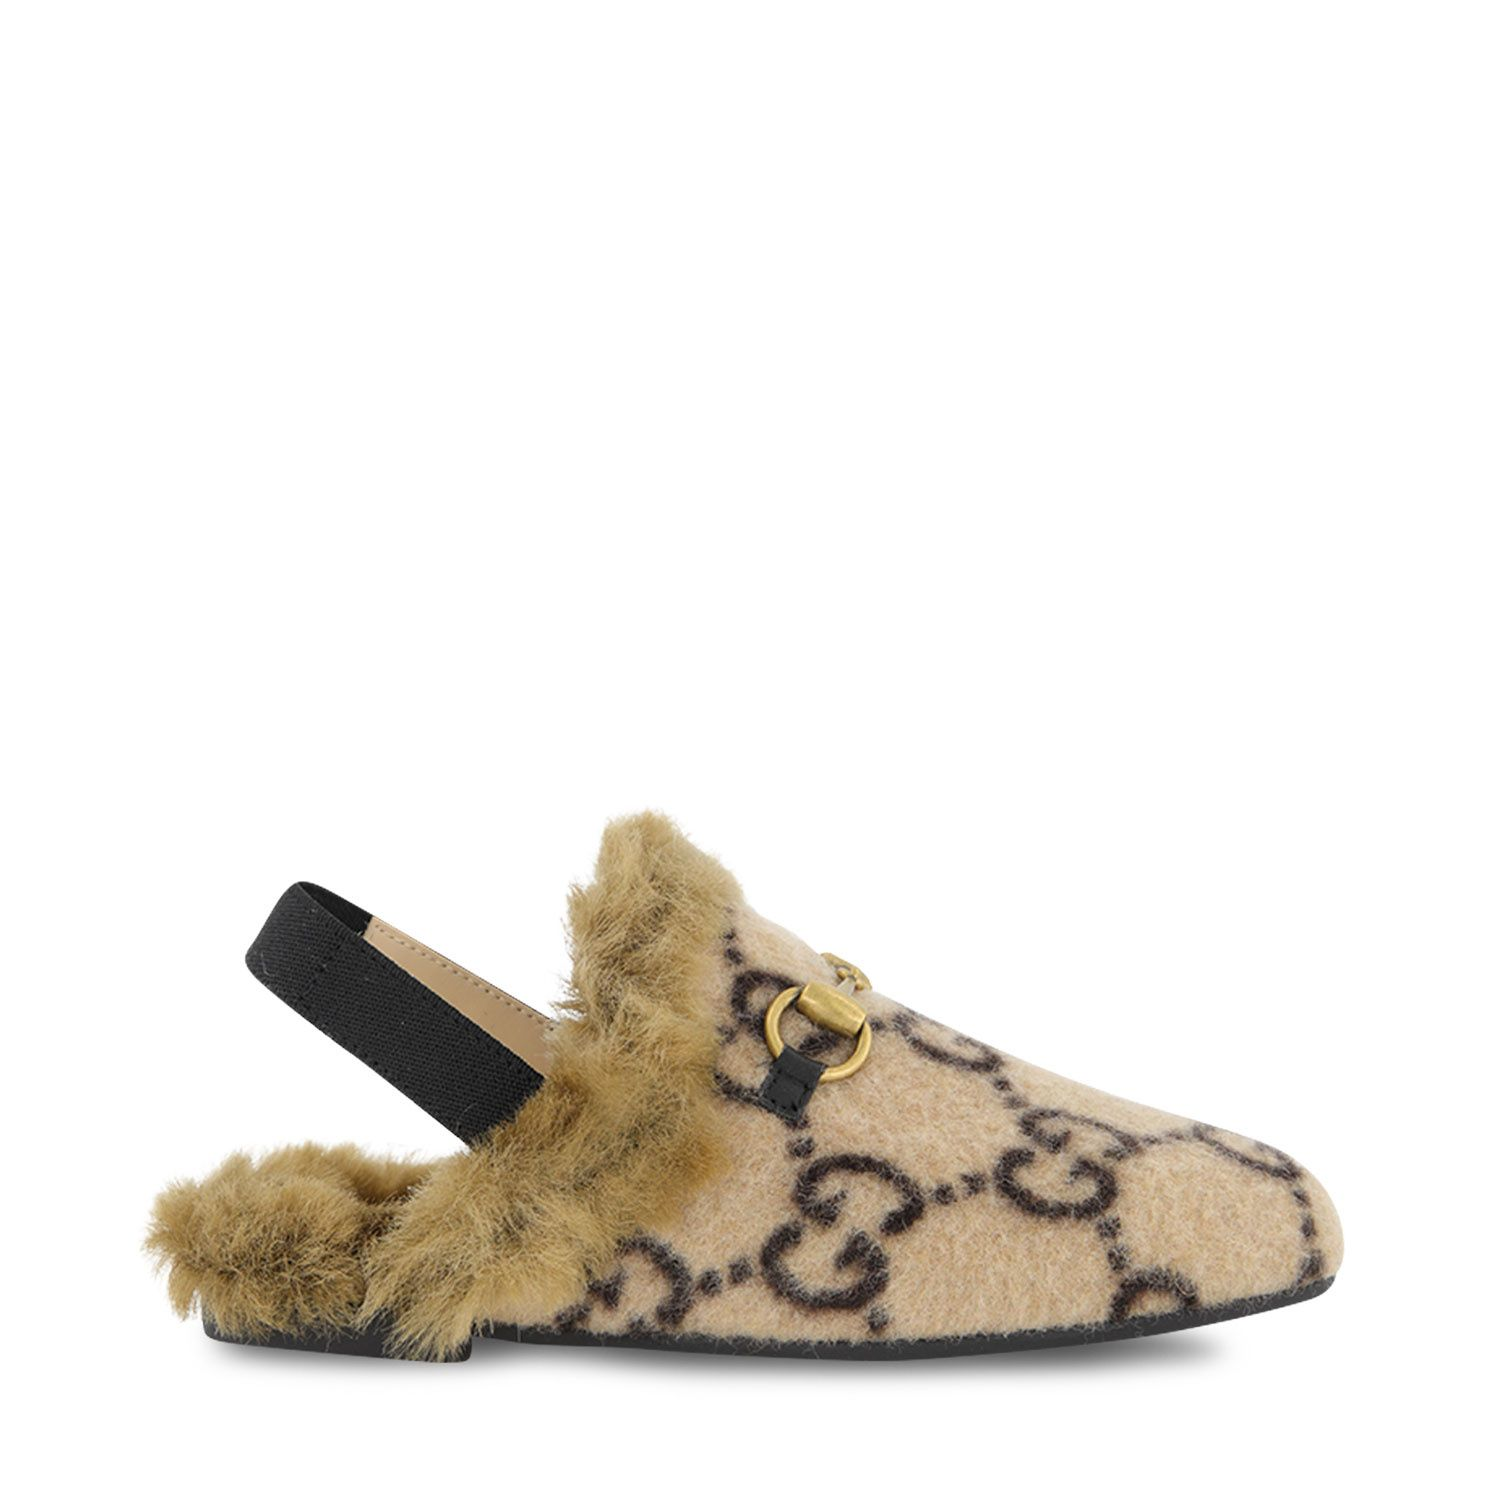 Picture of Gucci 634633 kids shoes beige